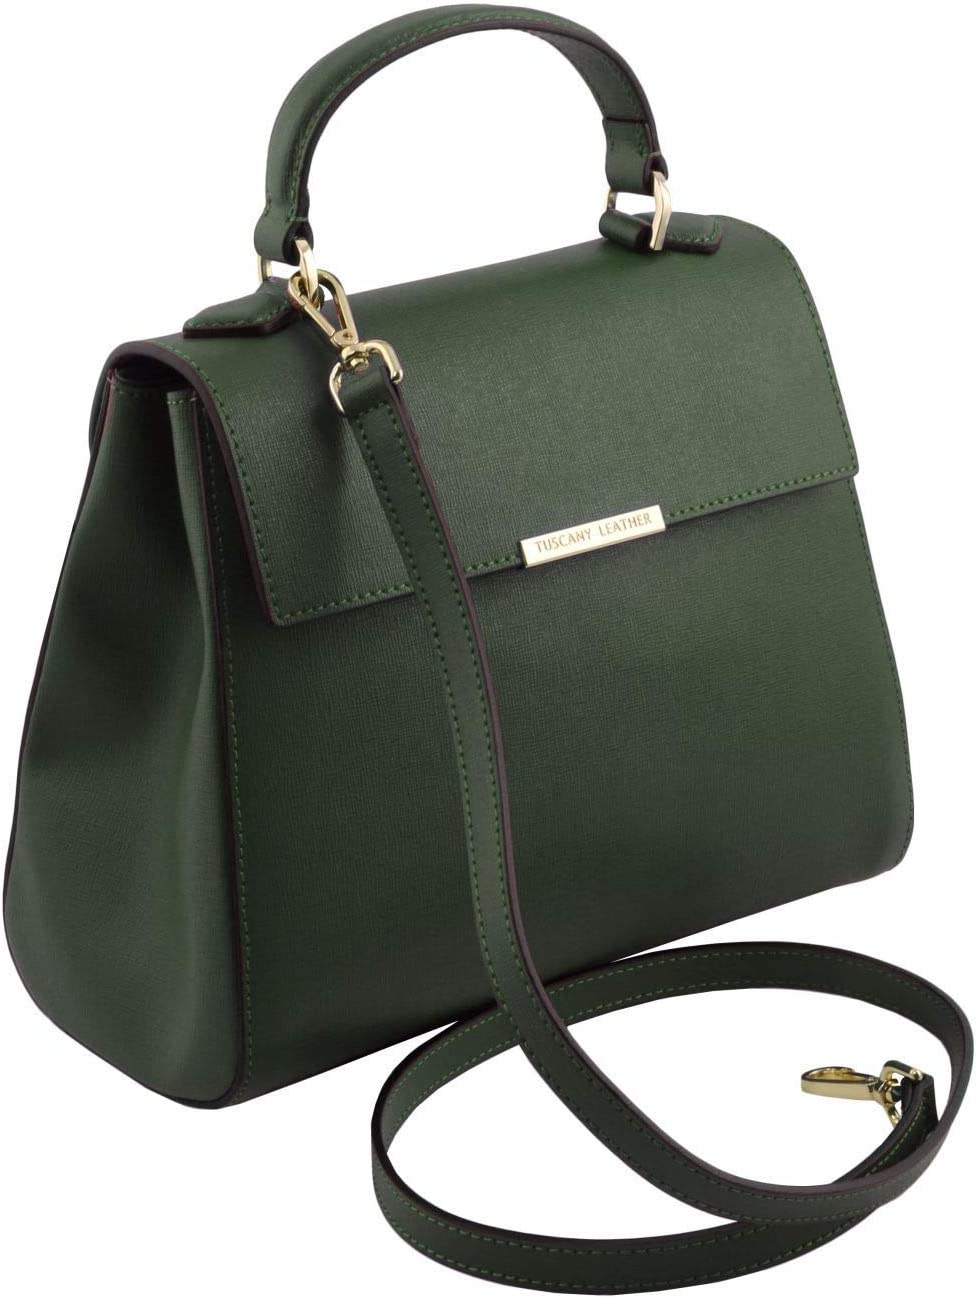 Tuscany Leather TLBag Small Saffiano leather duffel bag Forest Green